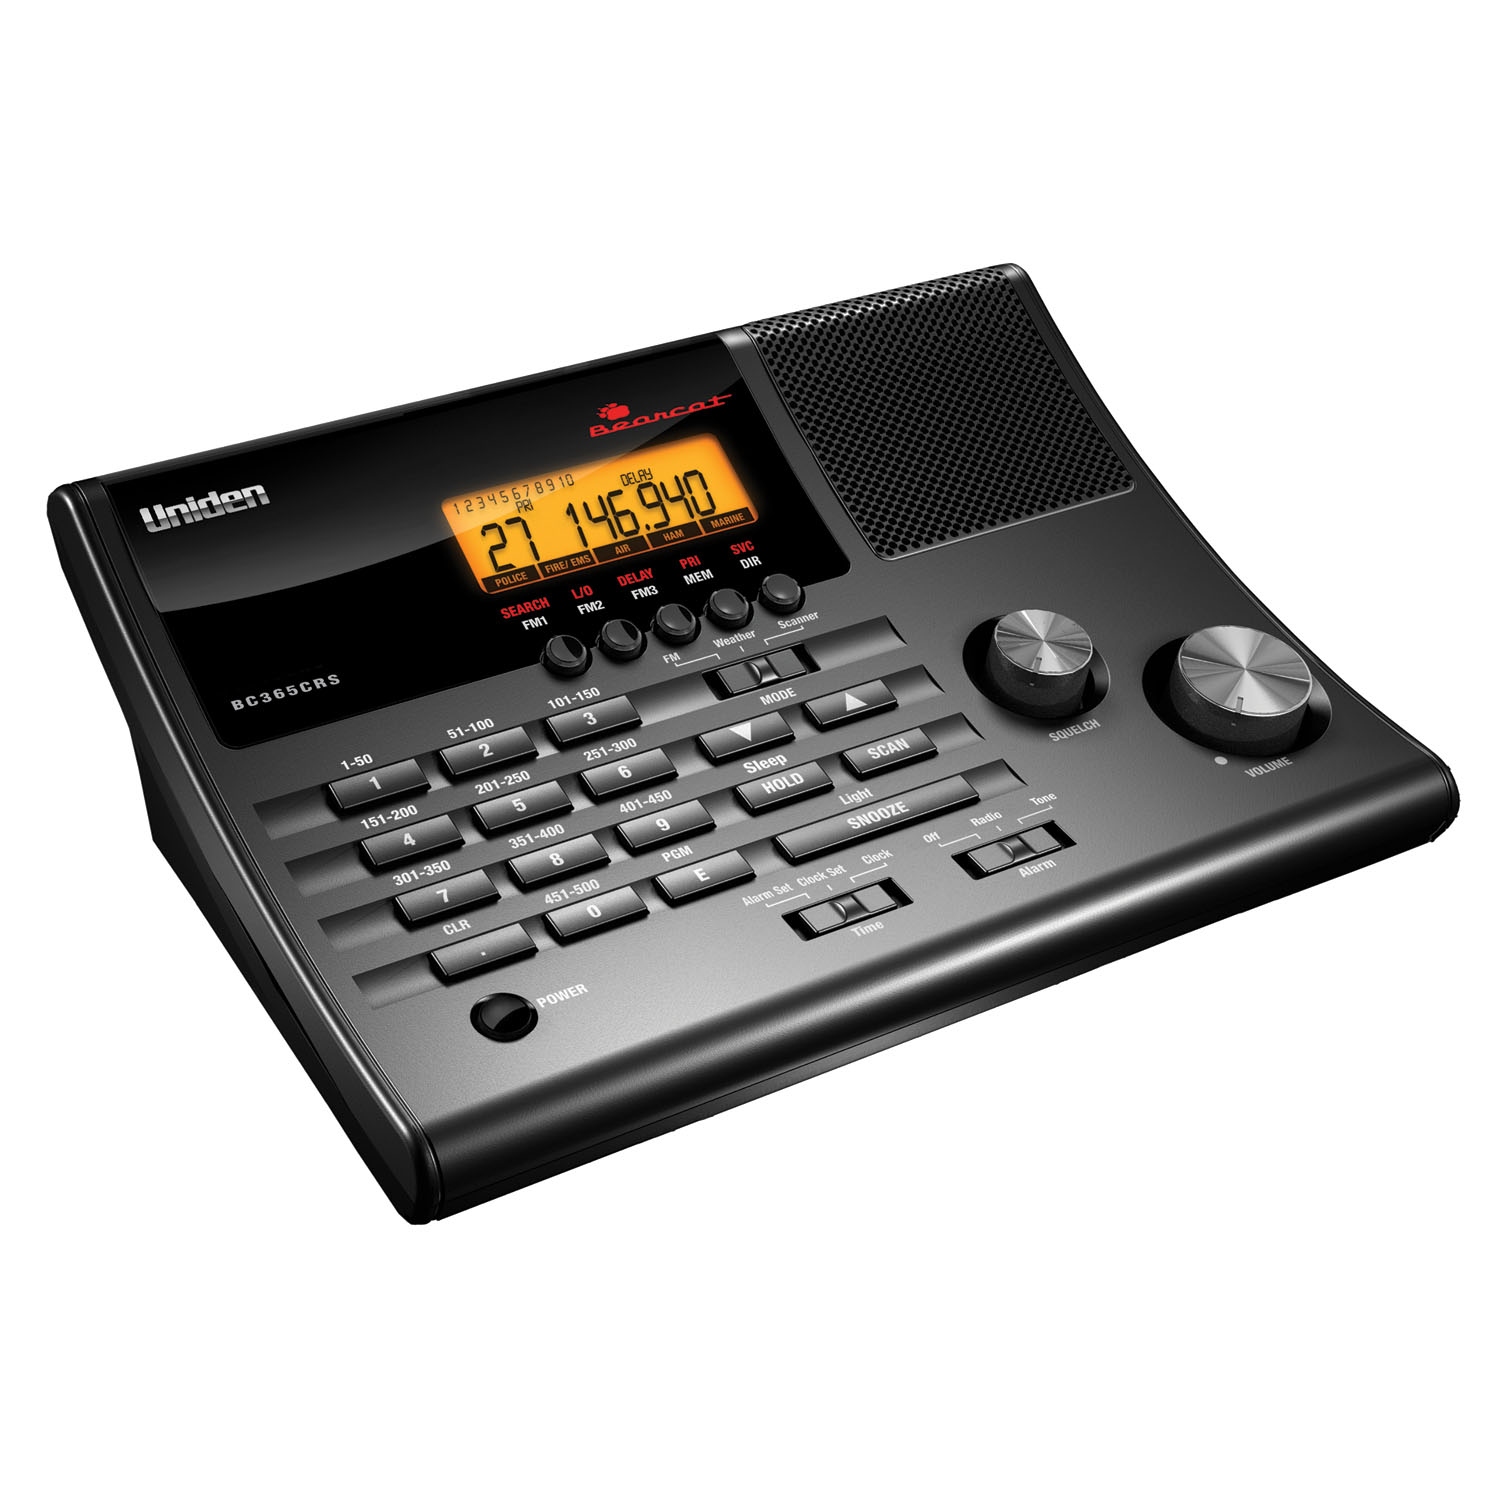 BC365CRS - Uniden 500 Channel Desktop Scanner